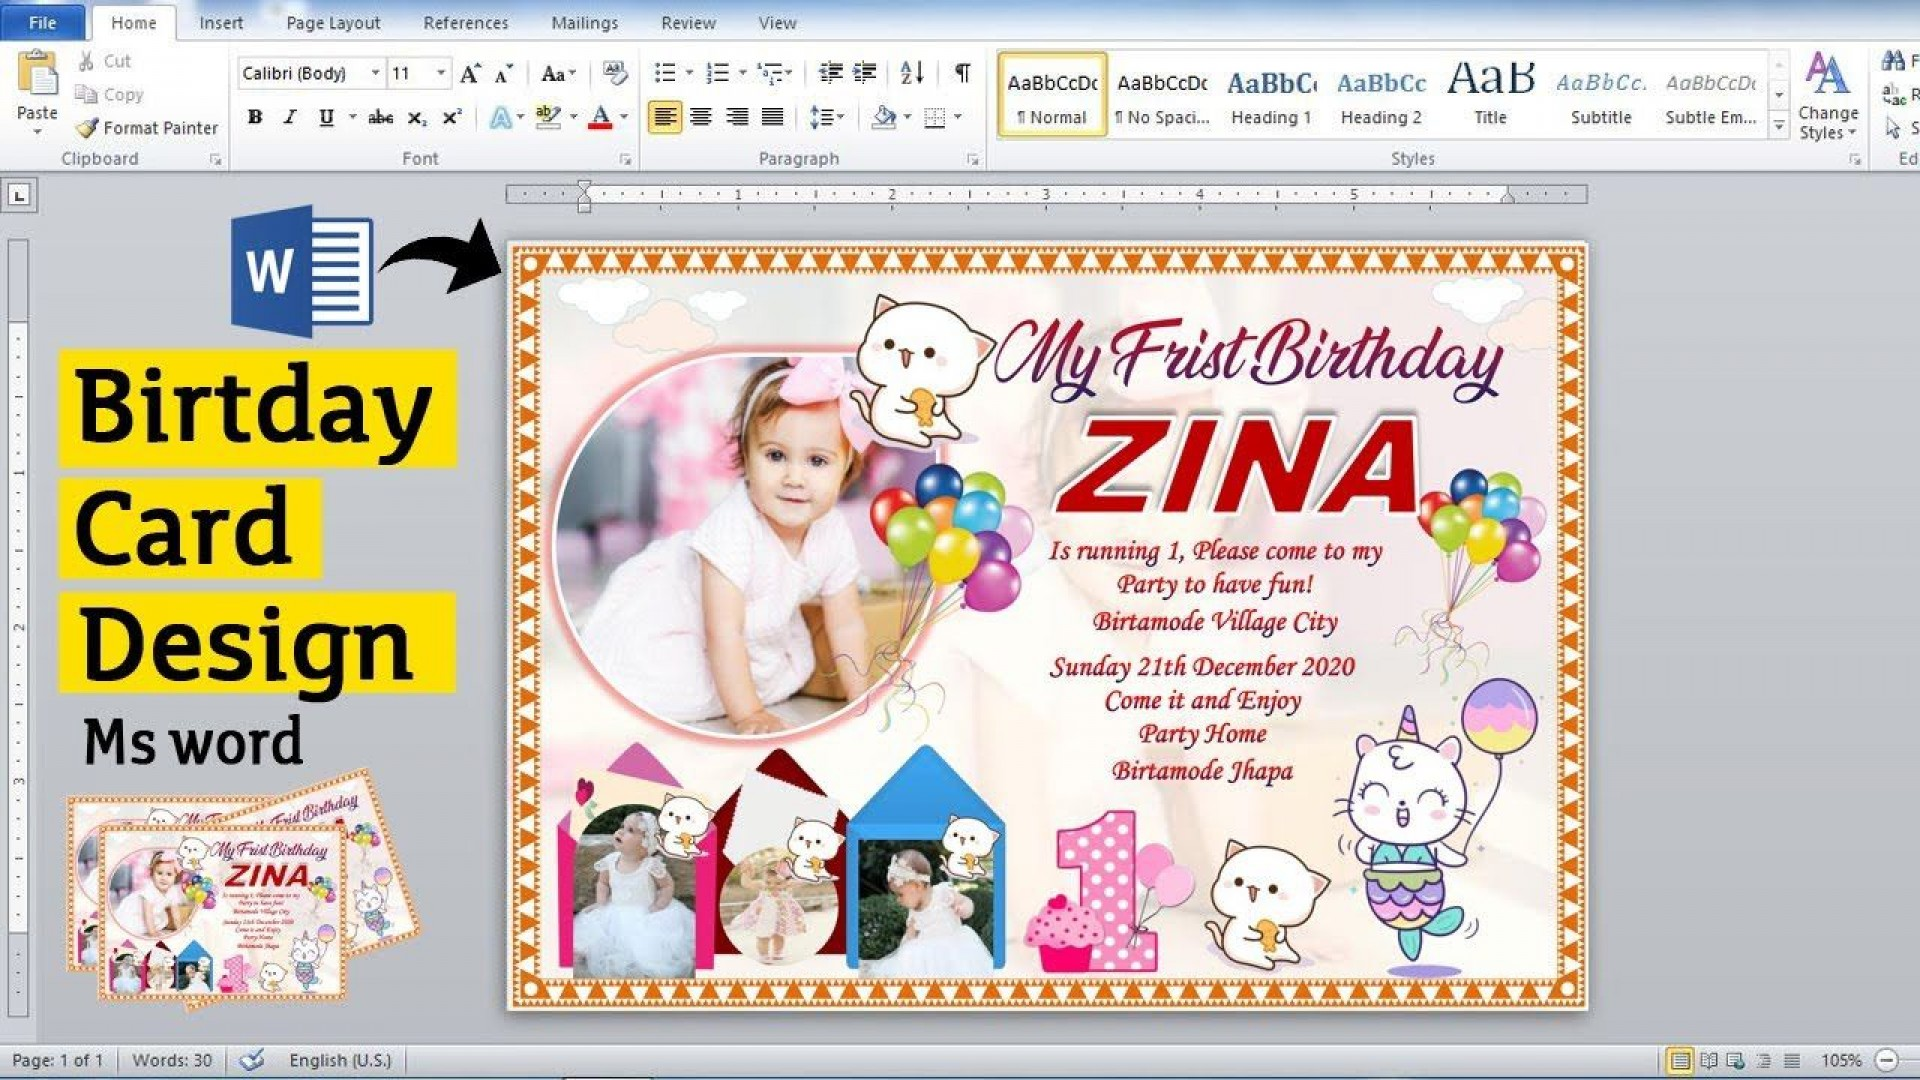 006 Beautiful Birthday Card Template For Word 2010 Picture  Greeting Microsoft1920